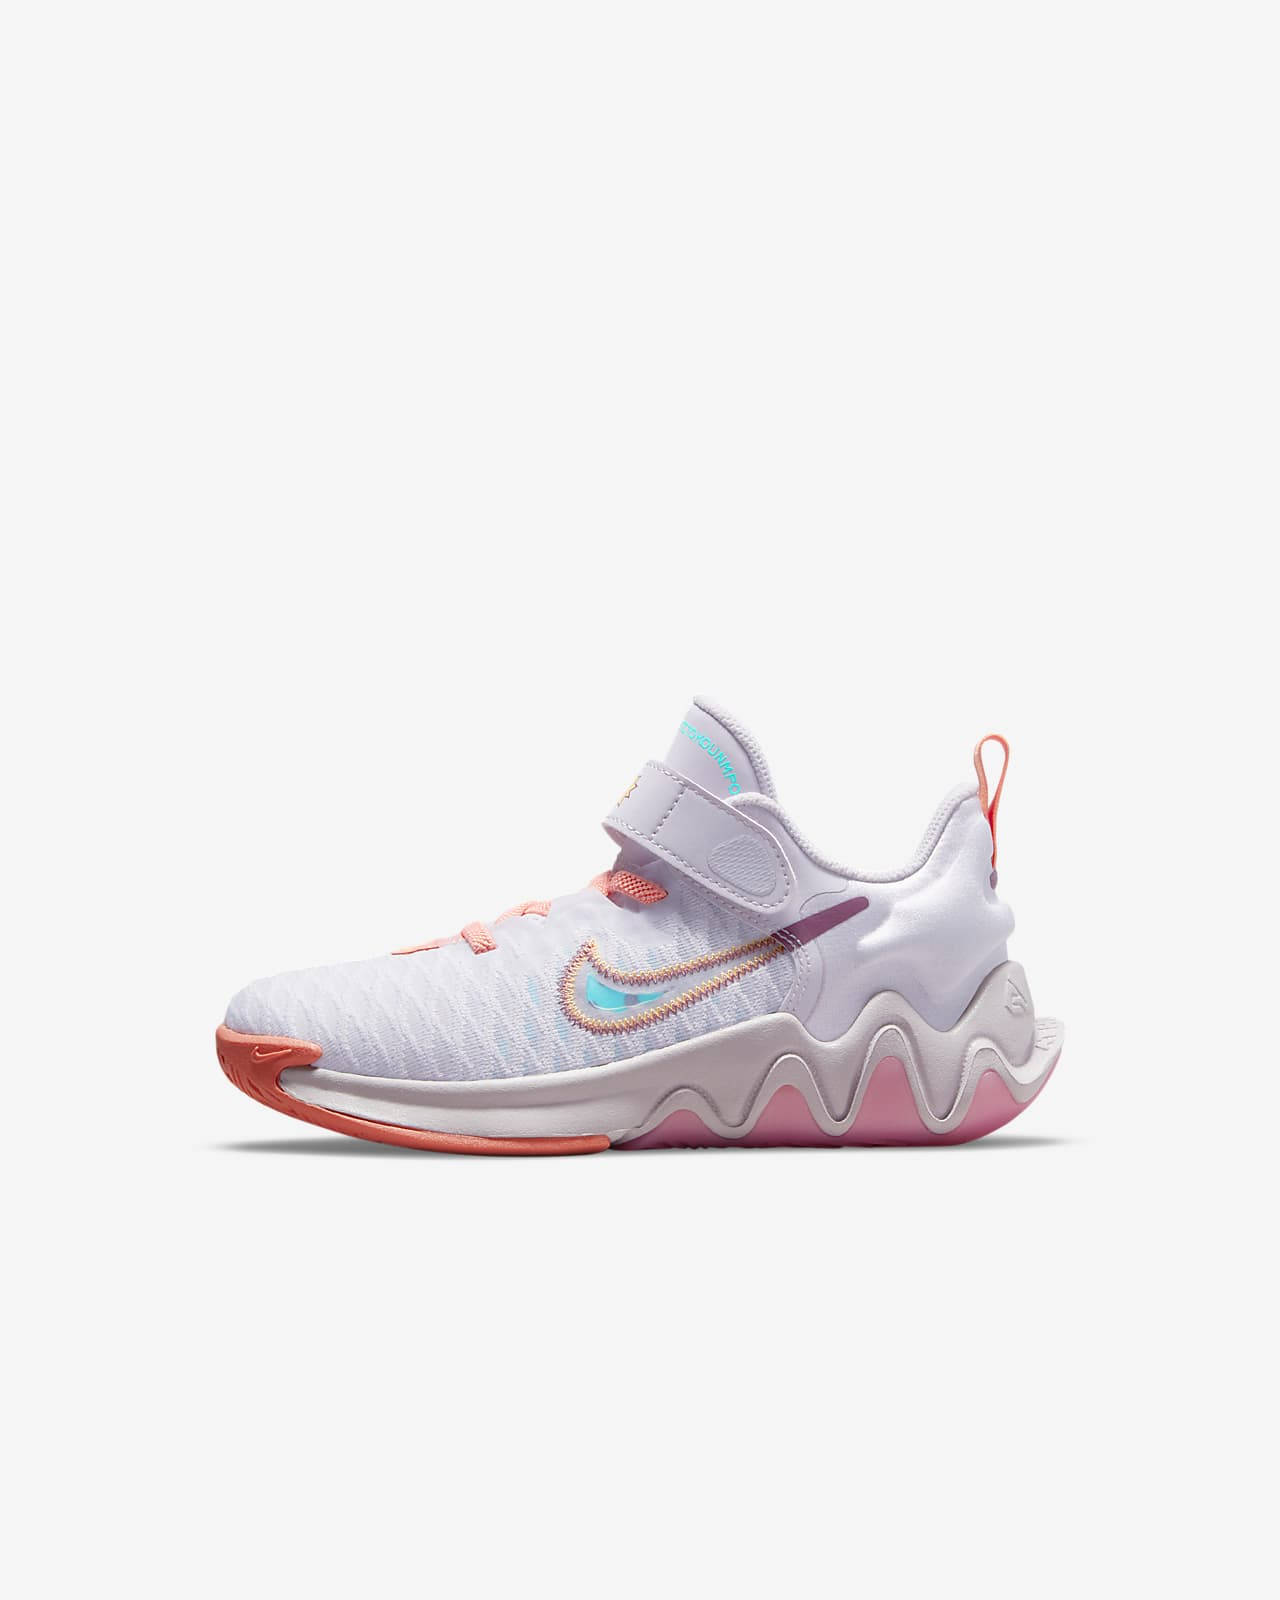 Giannis Immortality Little Kids' Shoes